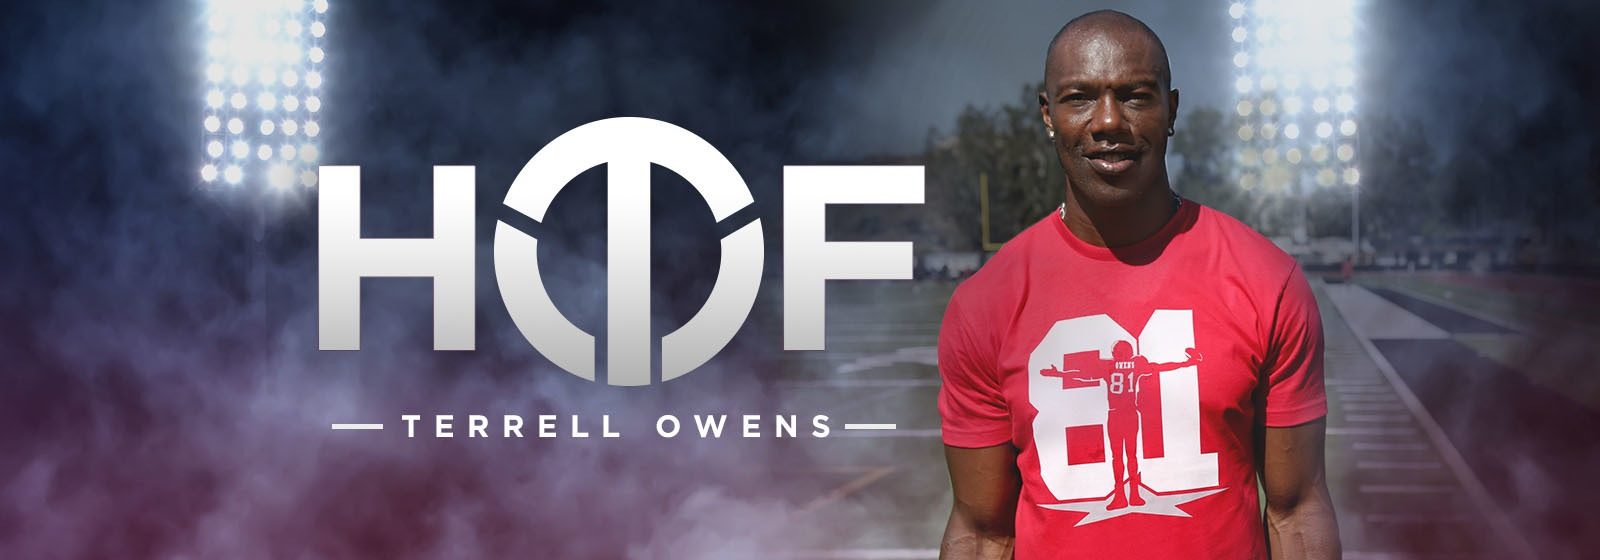 TERRELL OWENS | 2018 HALL OF FAME COLLECTION Store